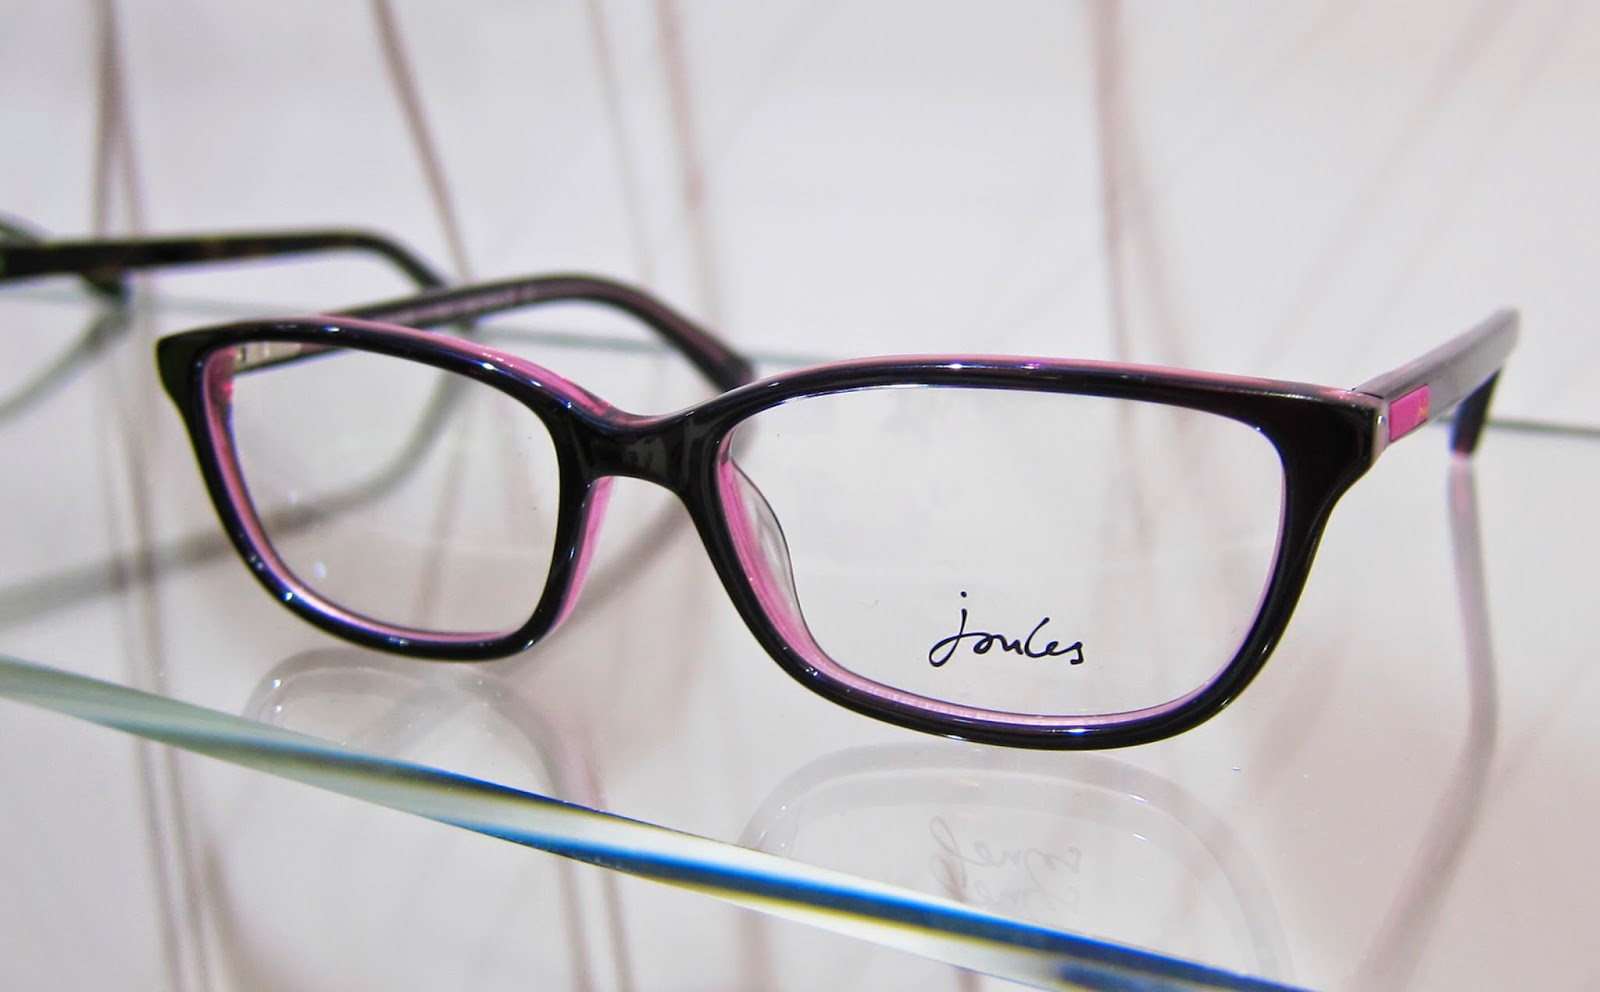 Joules Eyewear Collection - thats so yesterday